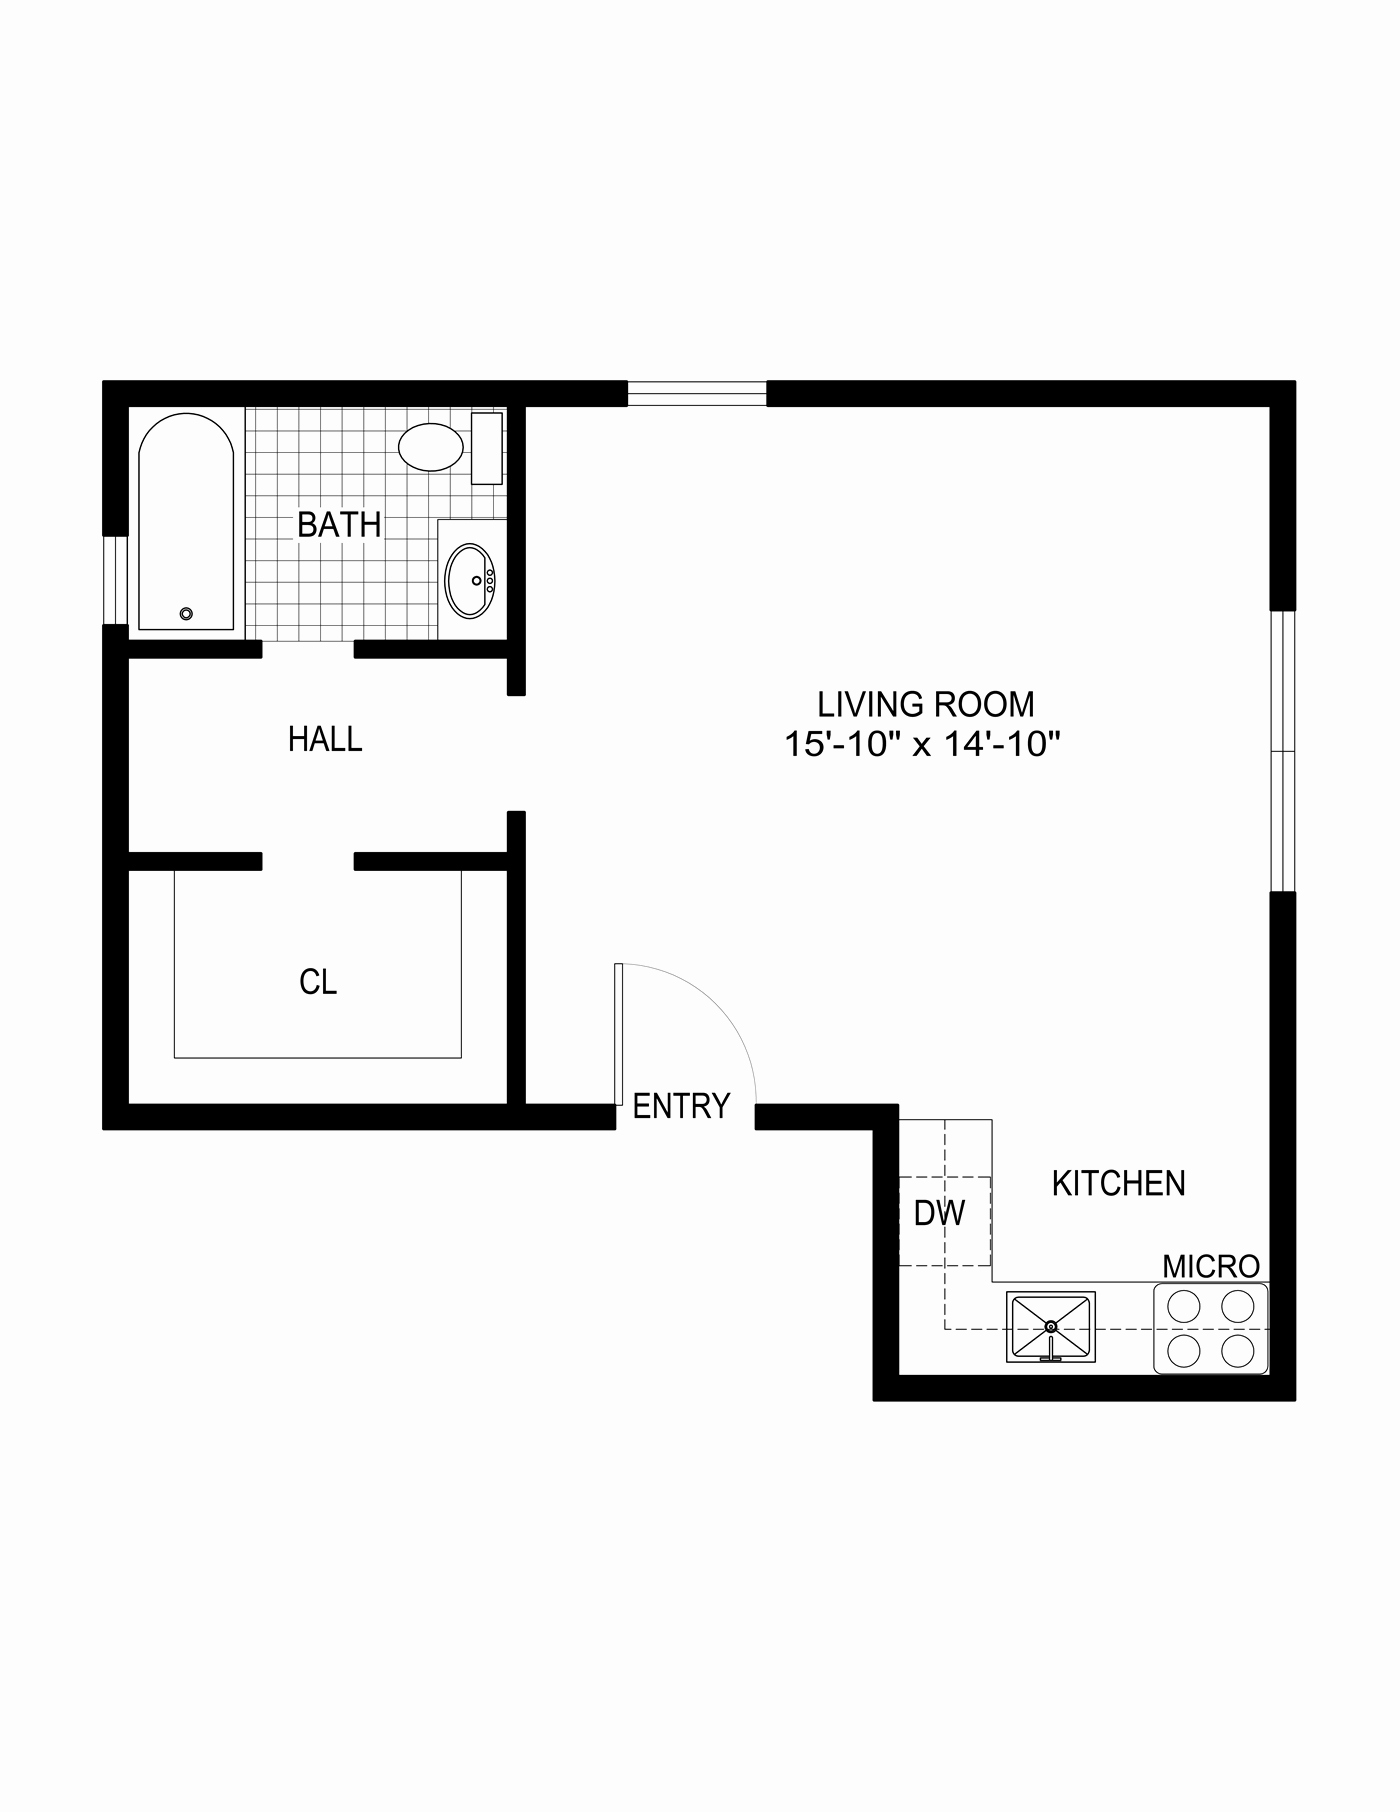 Free Floor Plan Template Awesome 23 Floor Plan Template Free to Plete Your Ideas